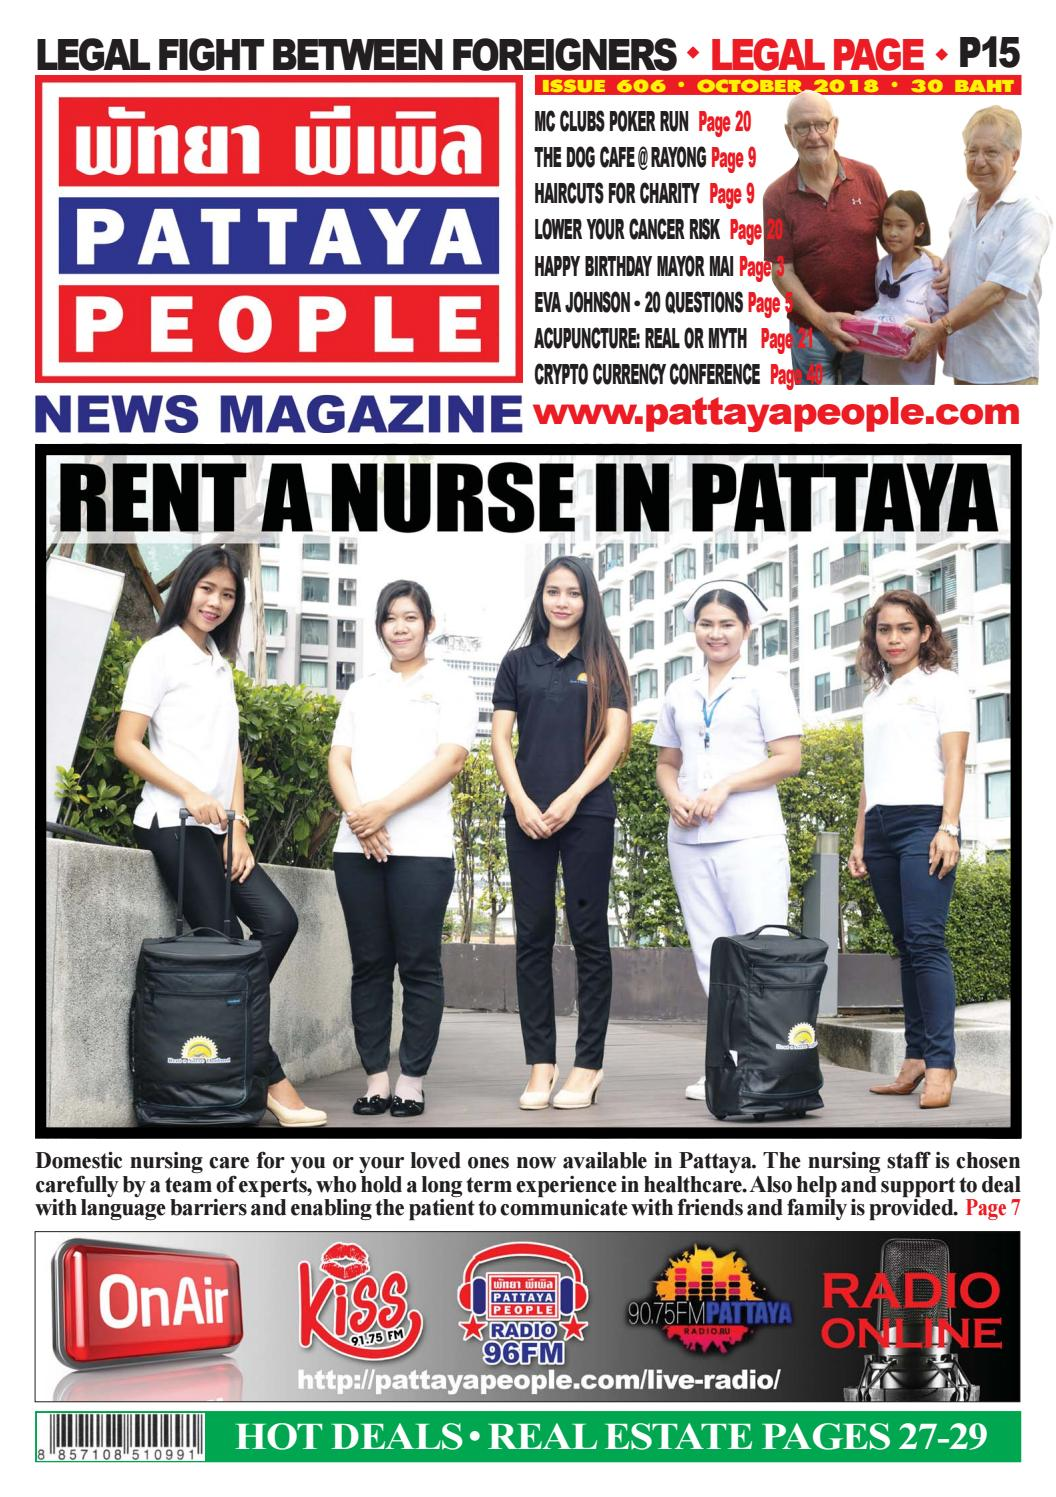 Pattaya People News Magazine 606 by PATTAYA PEOPLE NEWS MAGAZINE - issuu